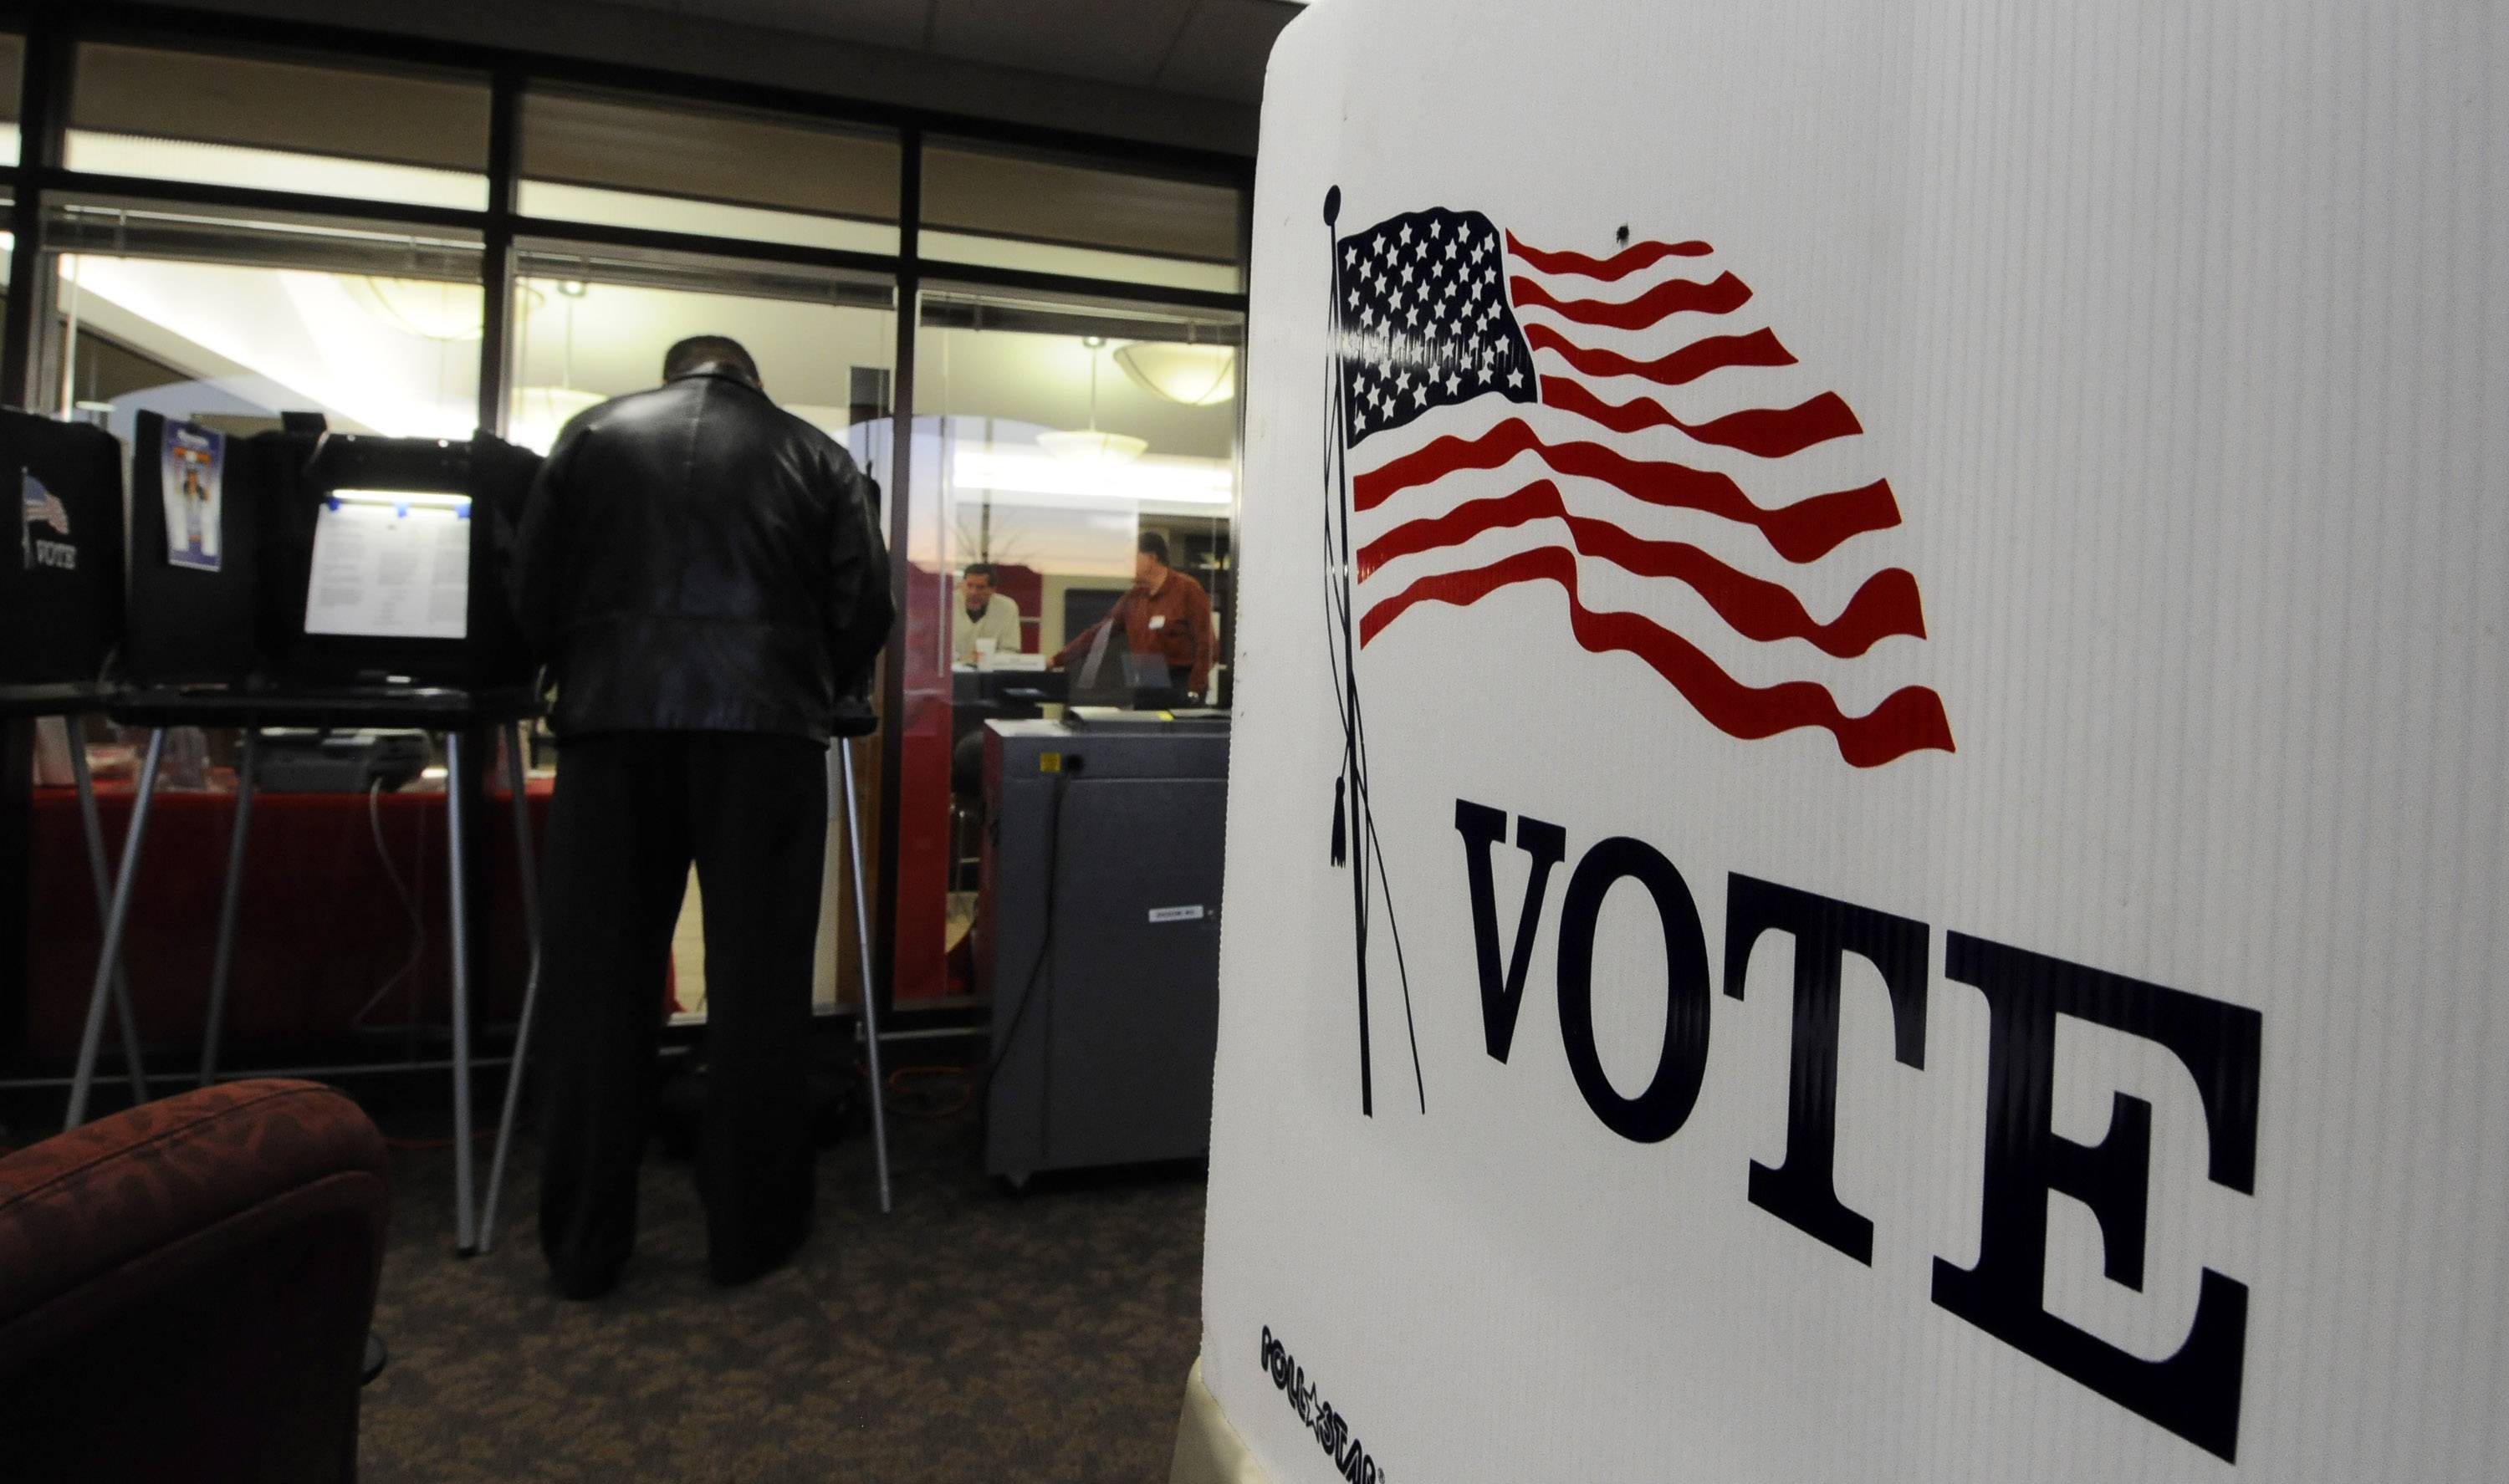 The Illinois State Board of Elections was hacked earlier this month.